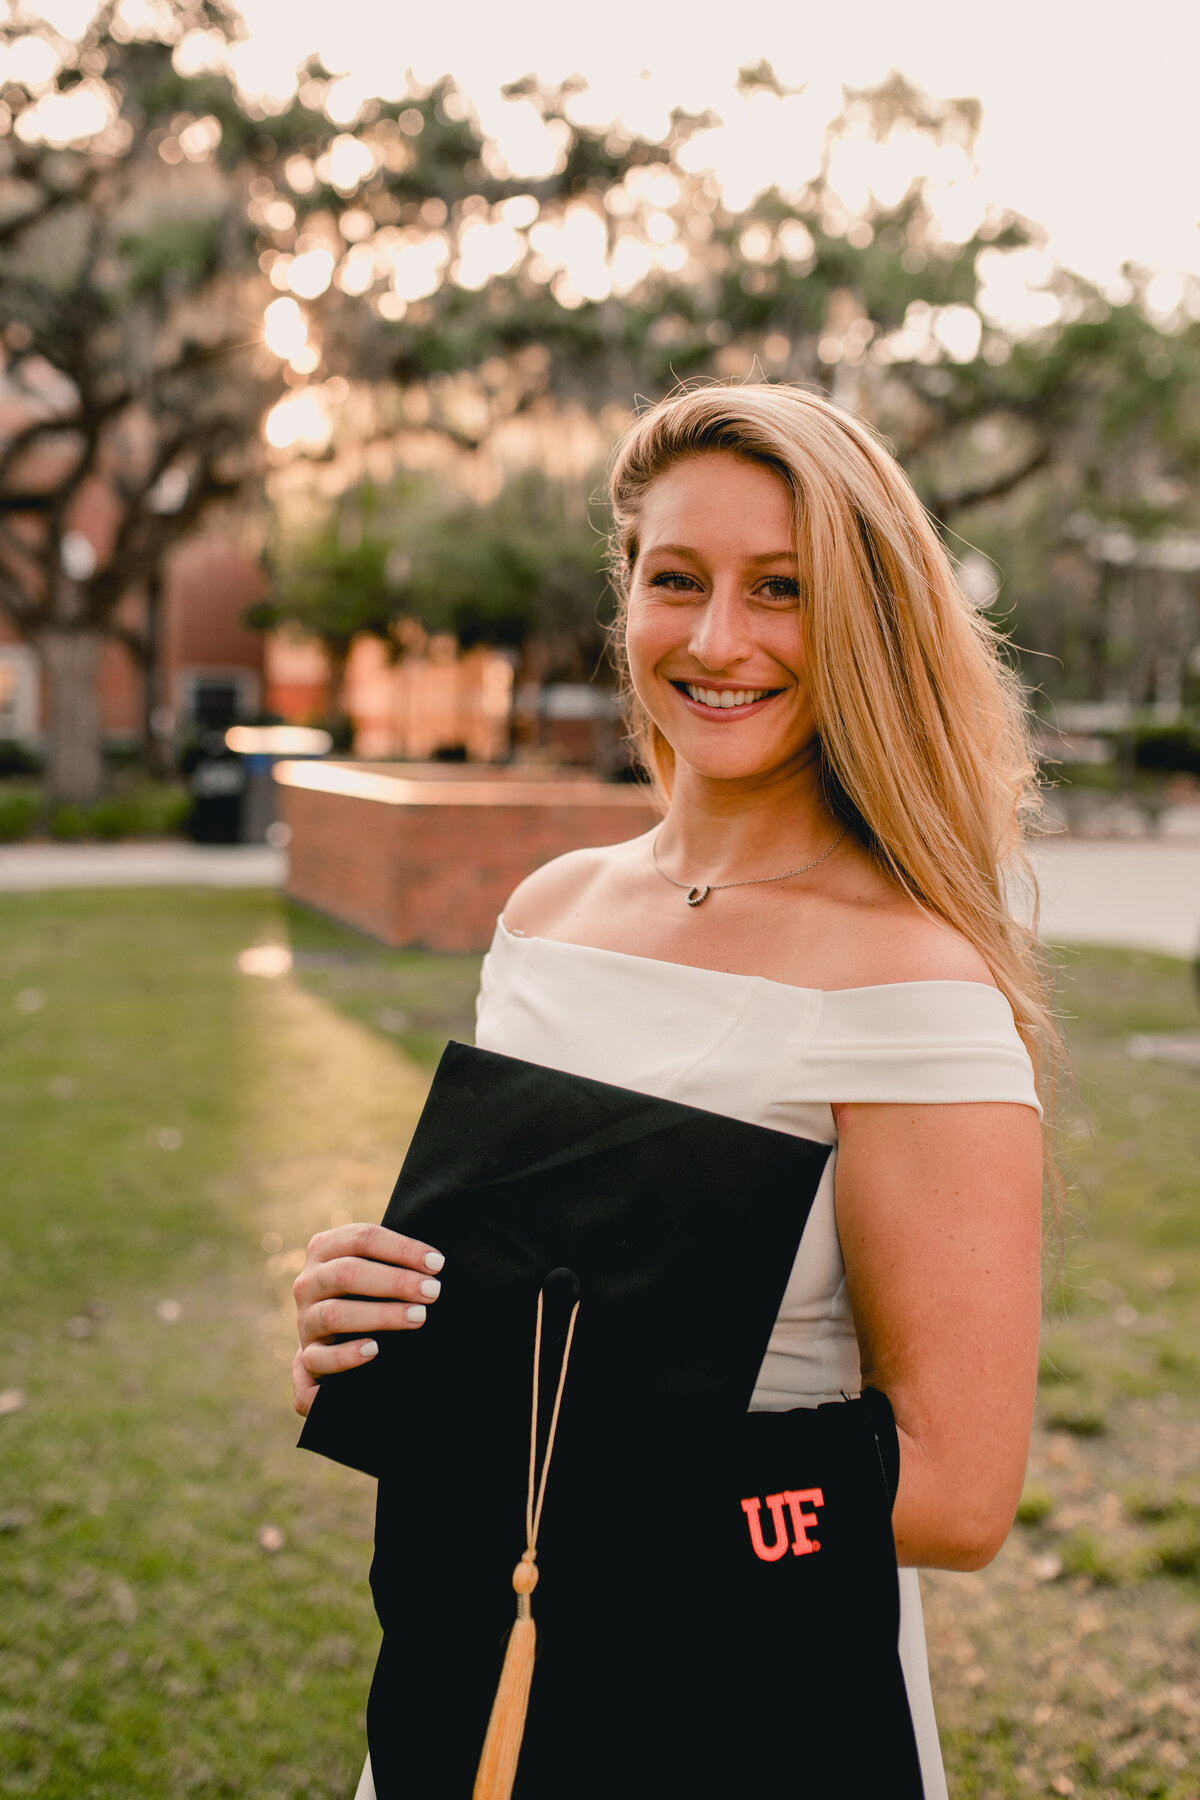 Cute college graduation photos at the University of Florida